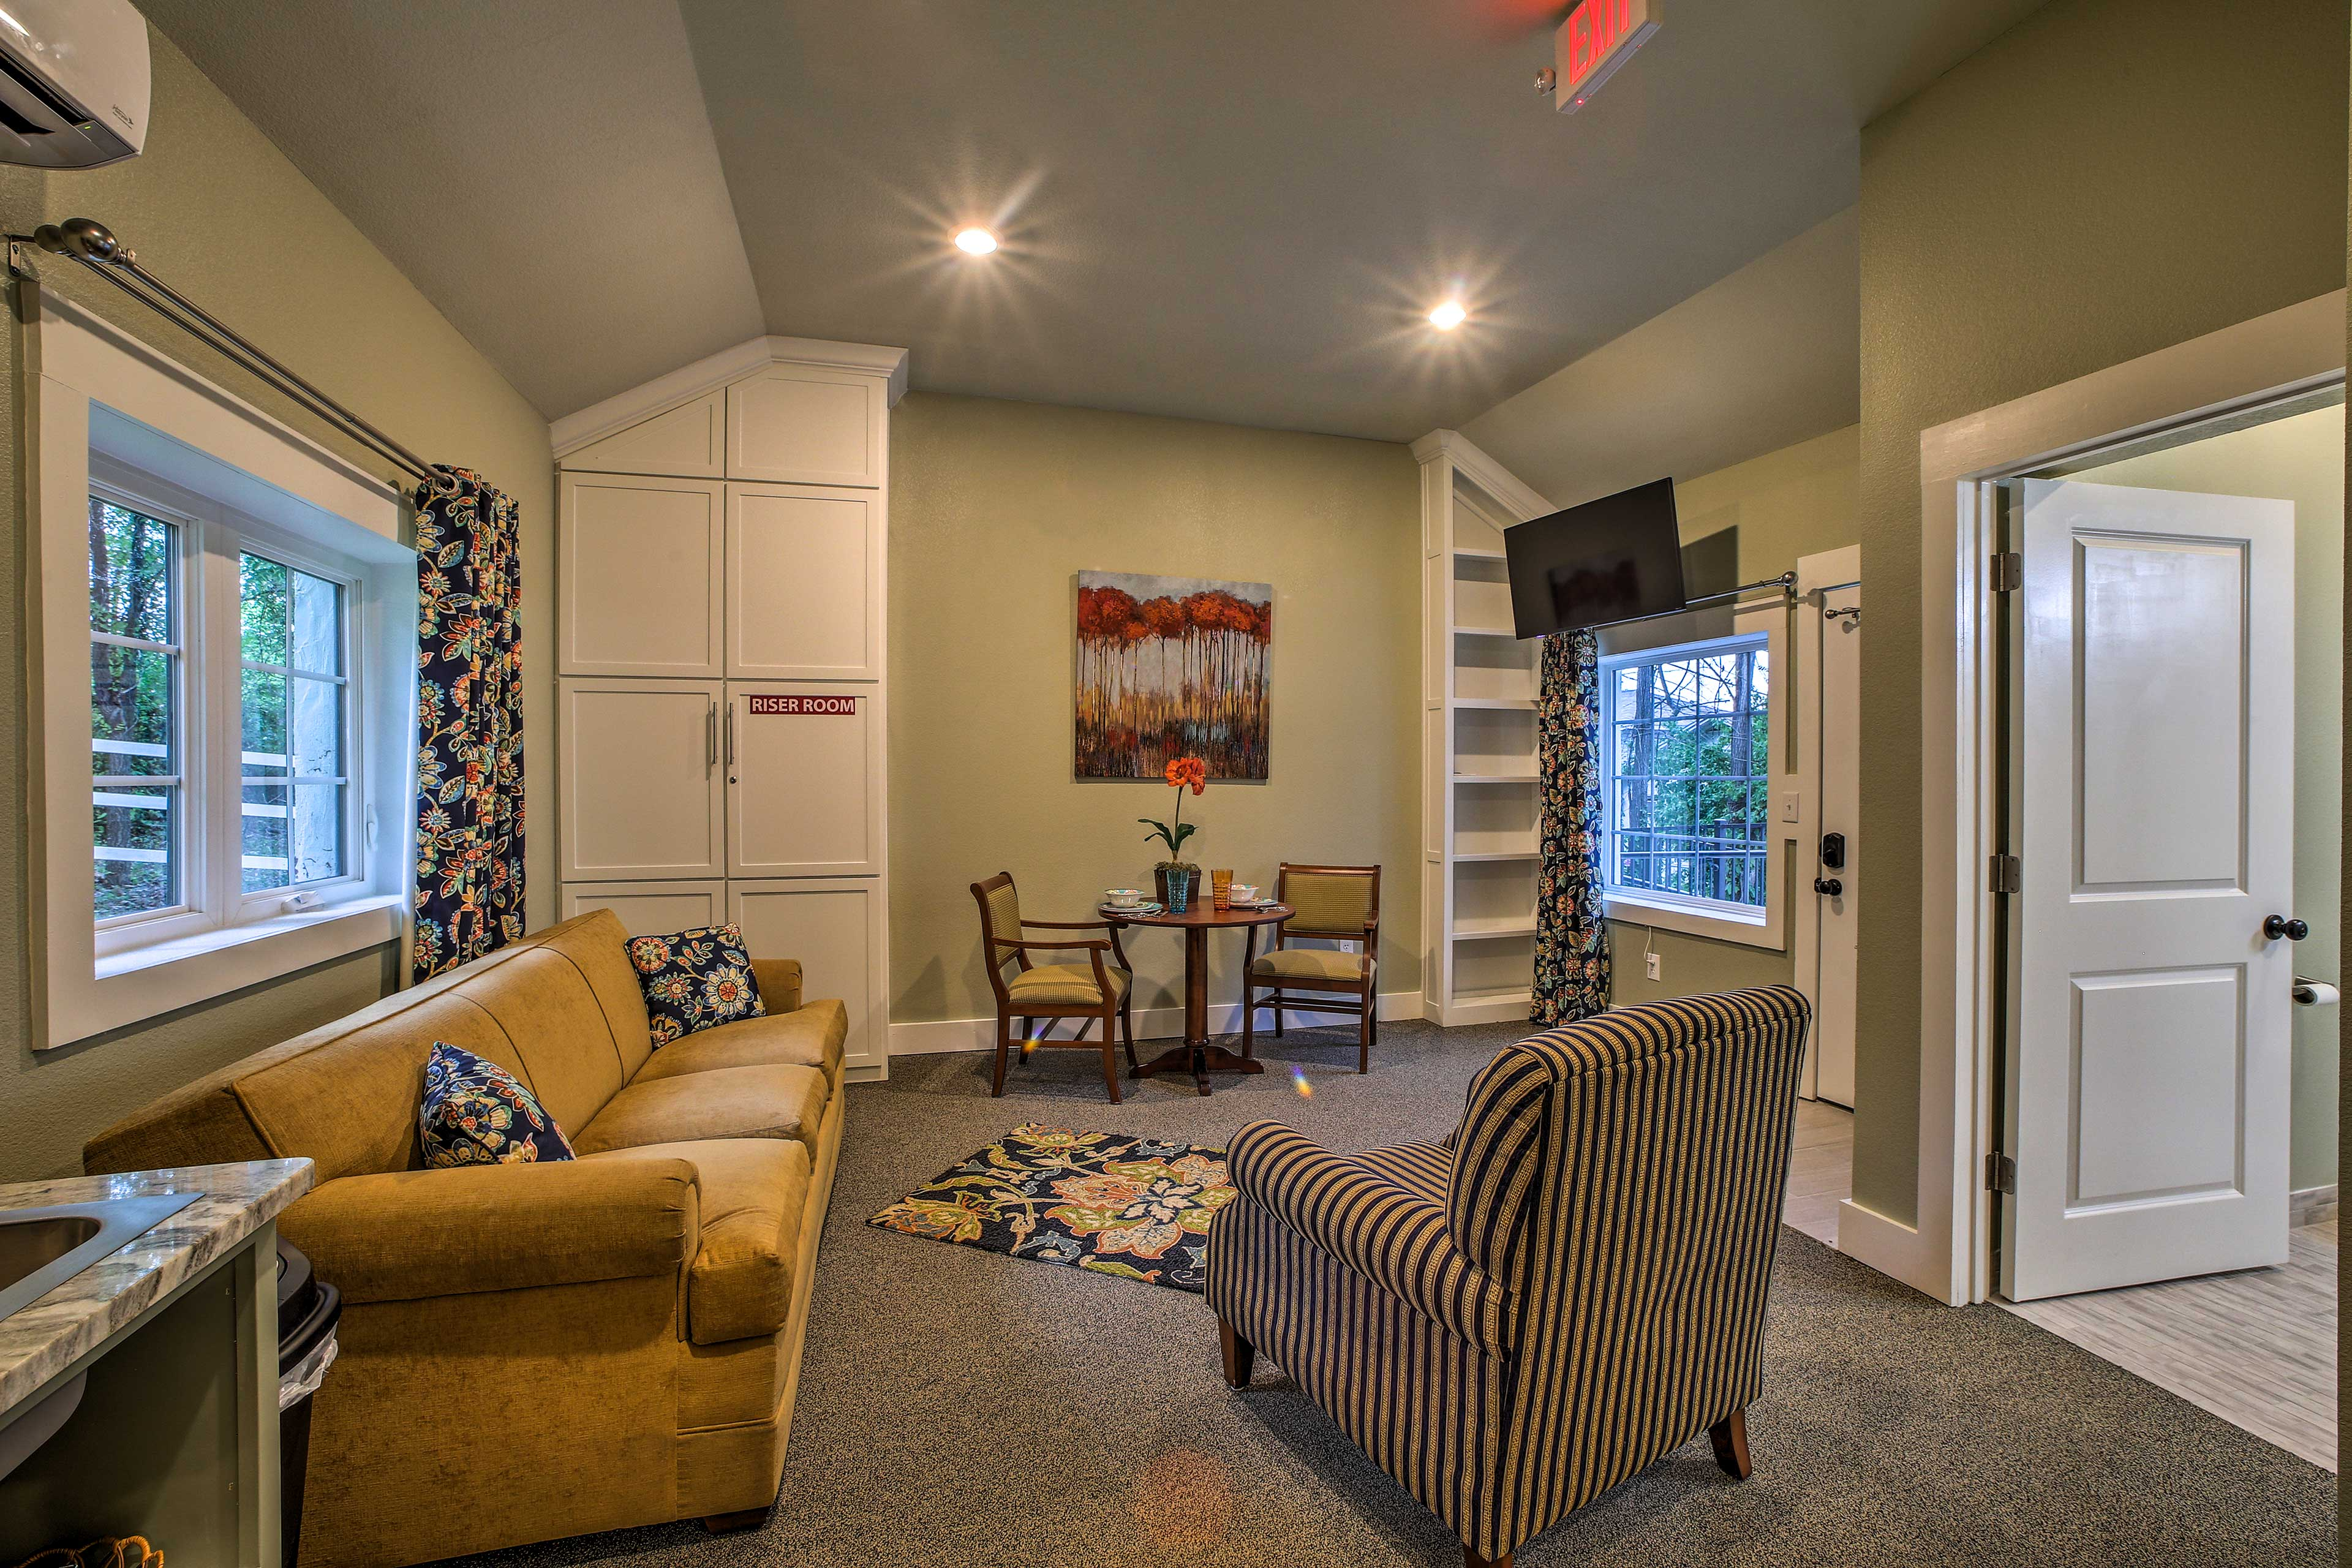 The living room has tall ceilings and a flat-screen cable TV.